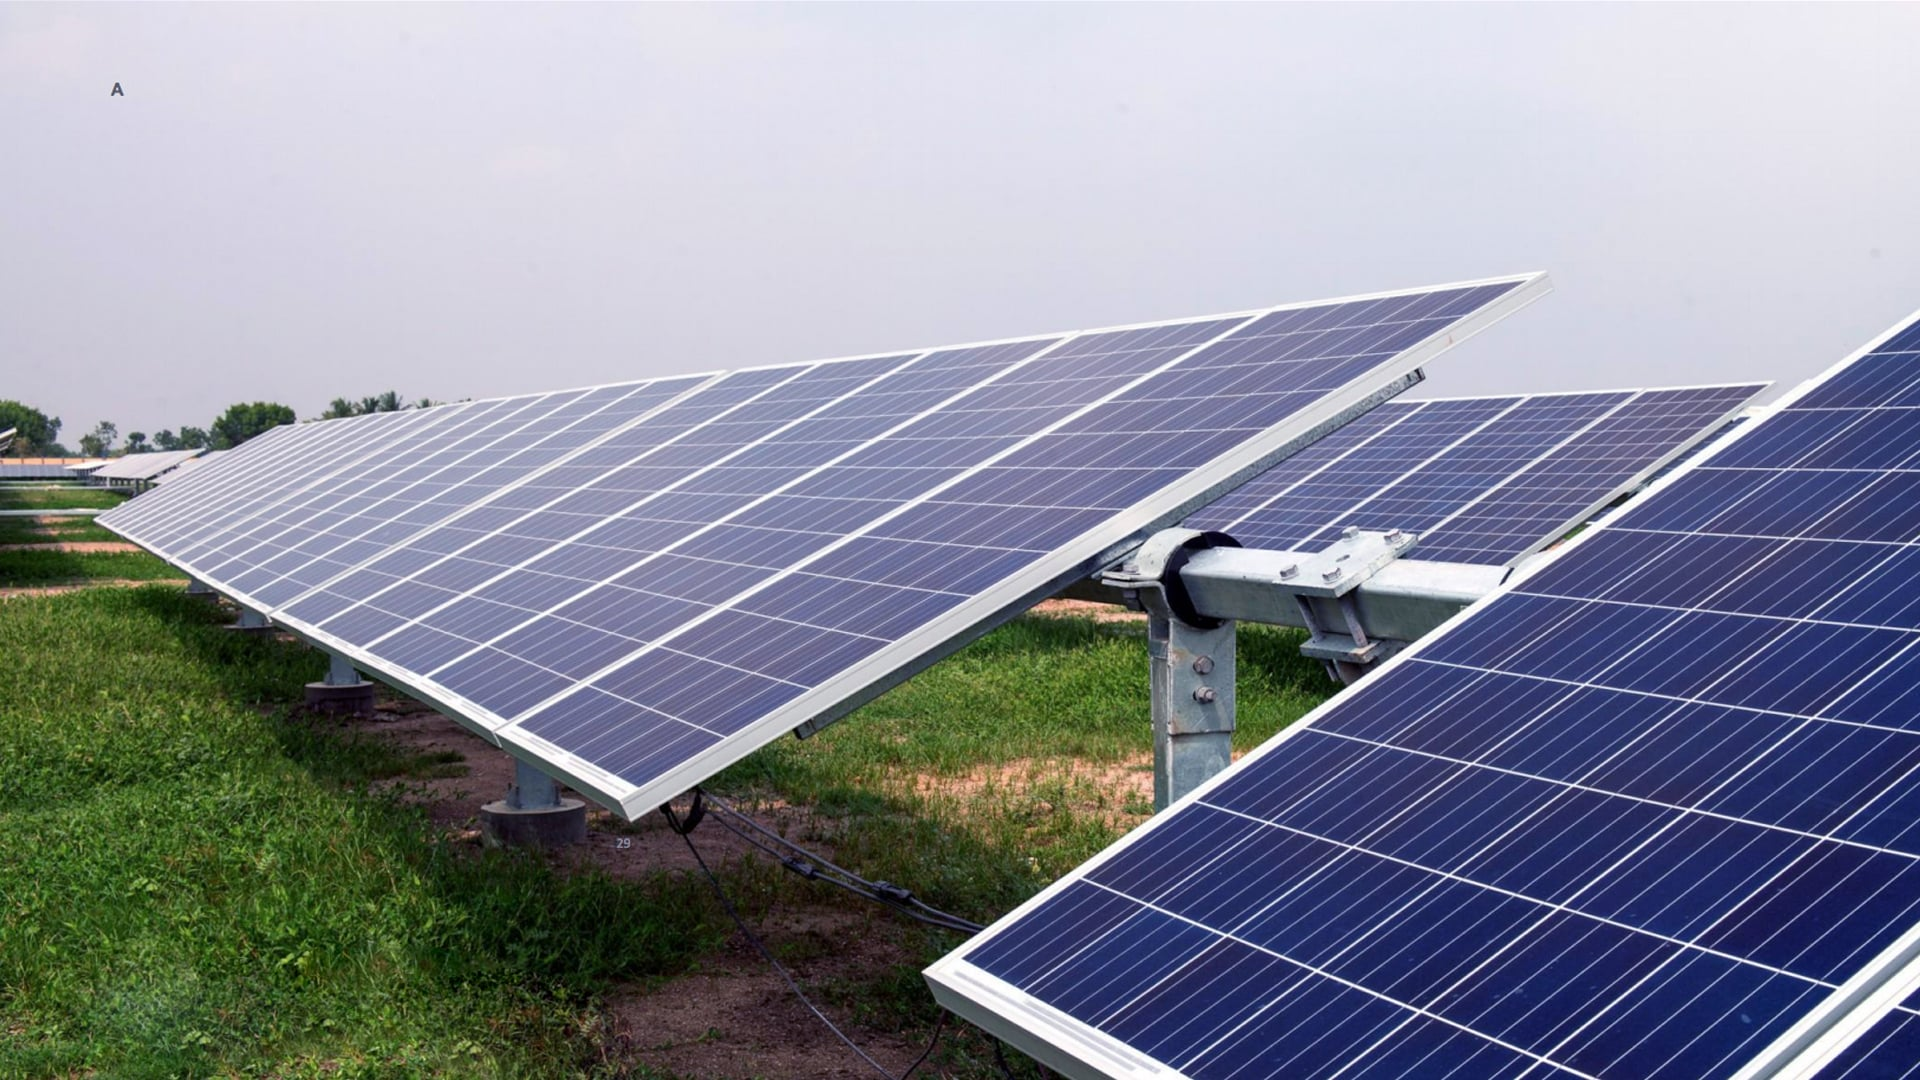 Adani Green Energy commissions 150 MW solar plant in Kutchh